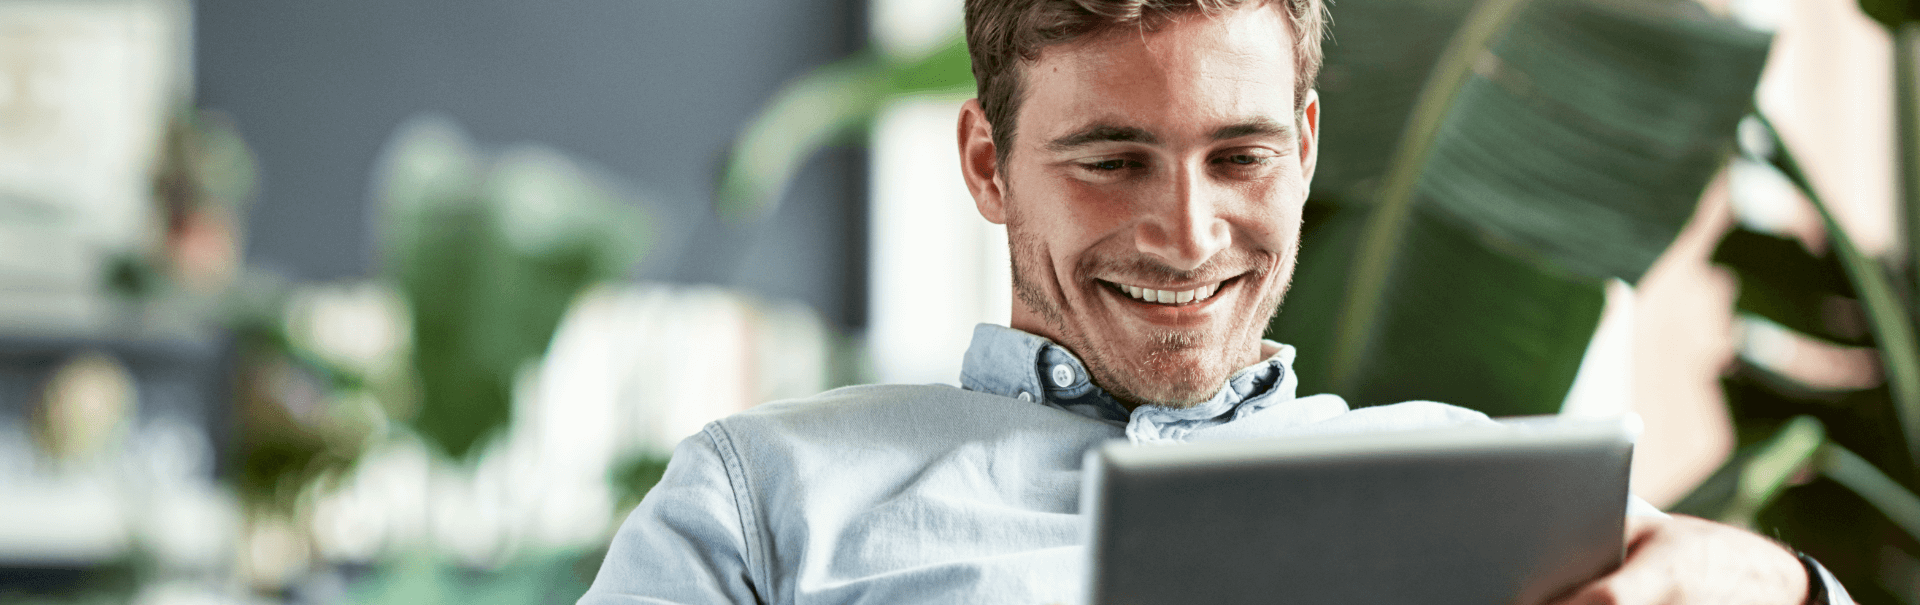 Man smiling while looking at his tablet